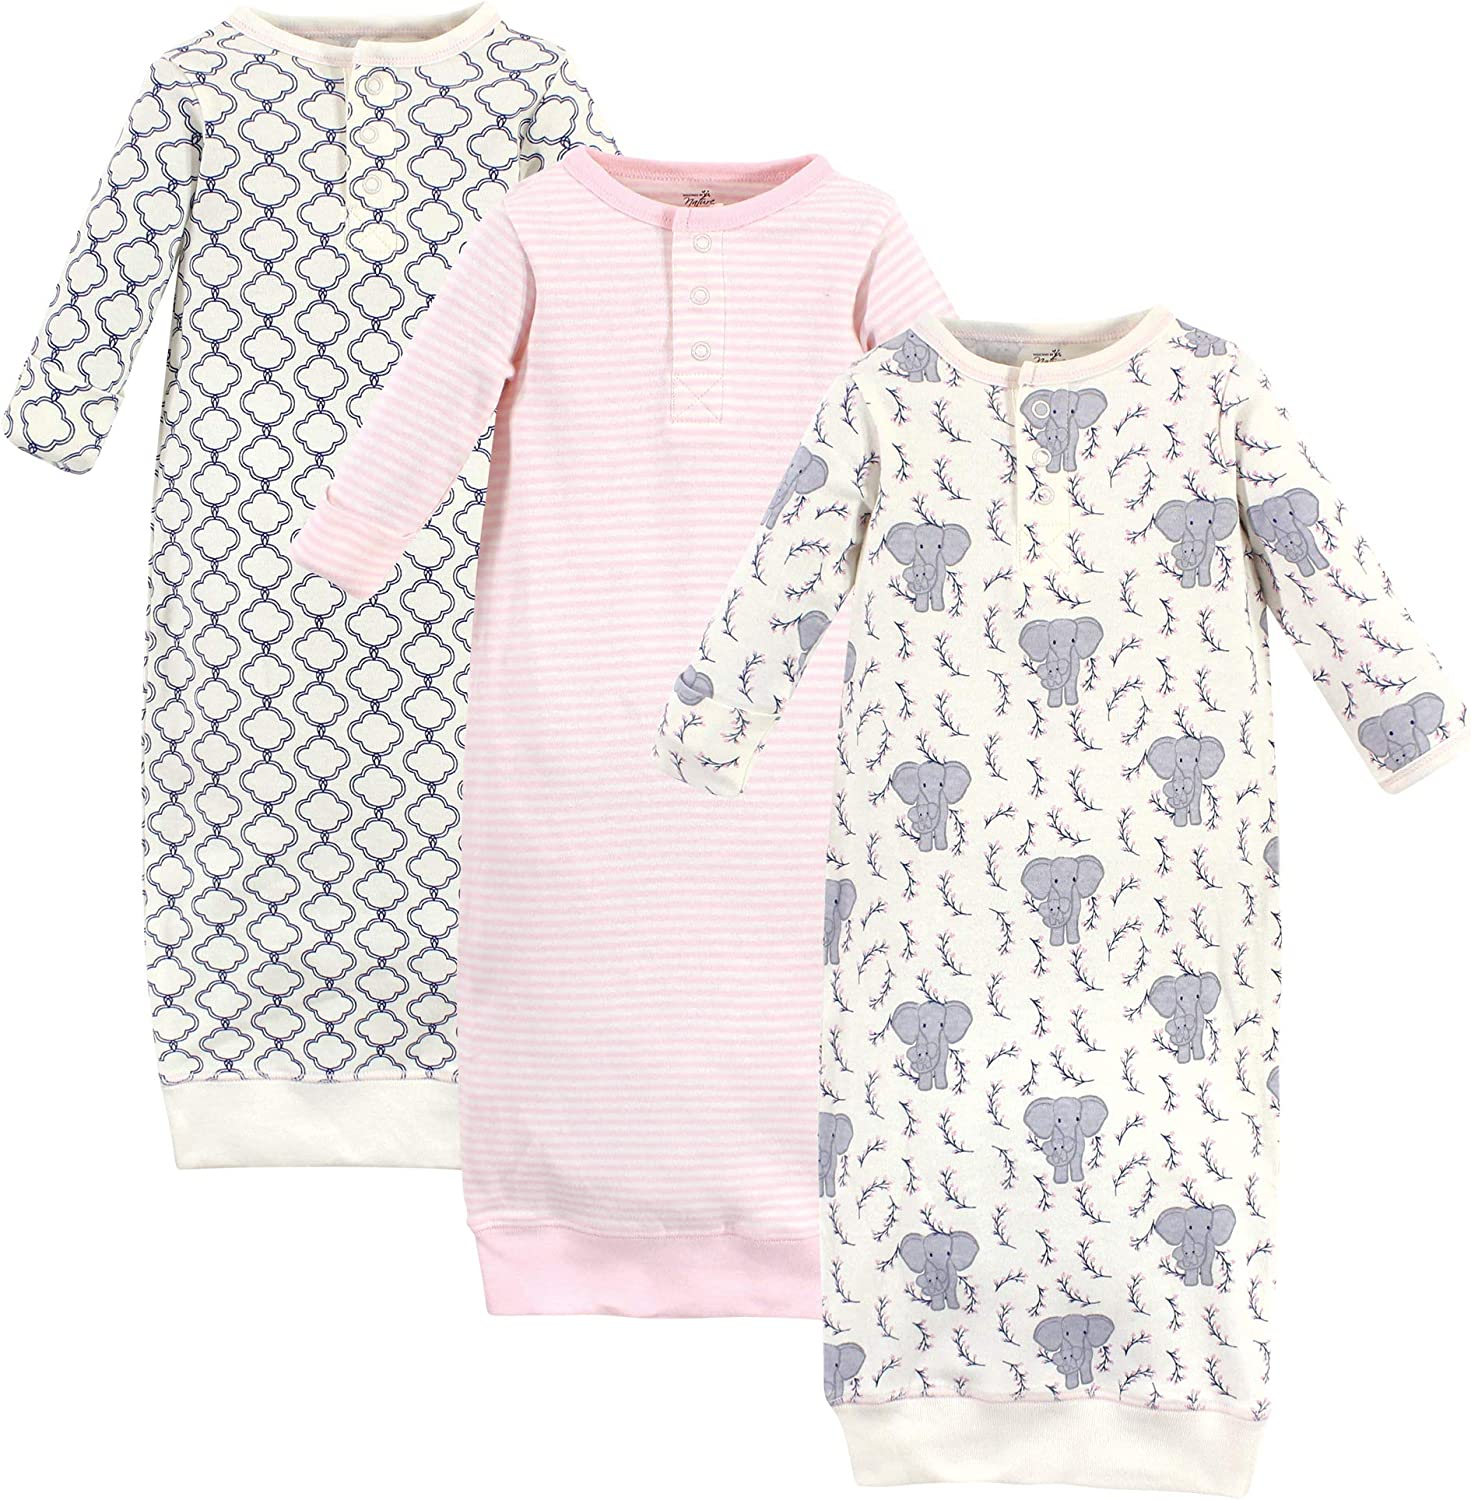 Touched by Nature Baby Organic Cotton Henley Gowns